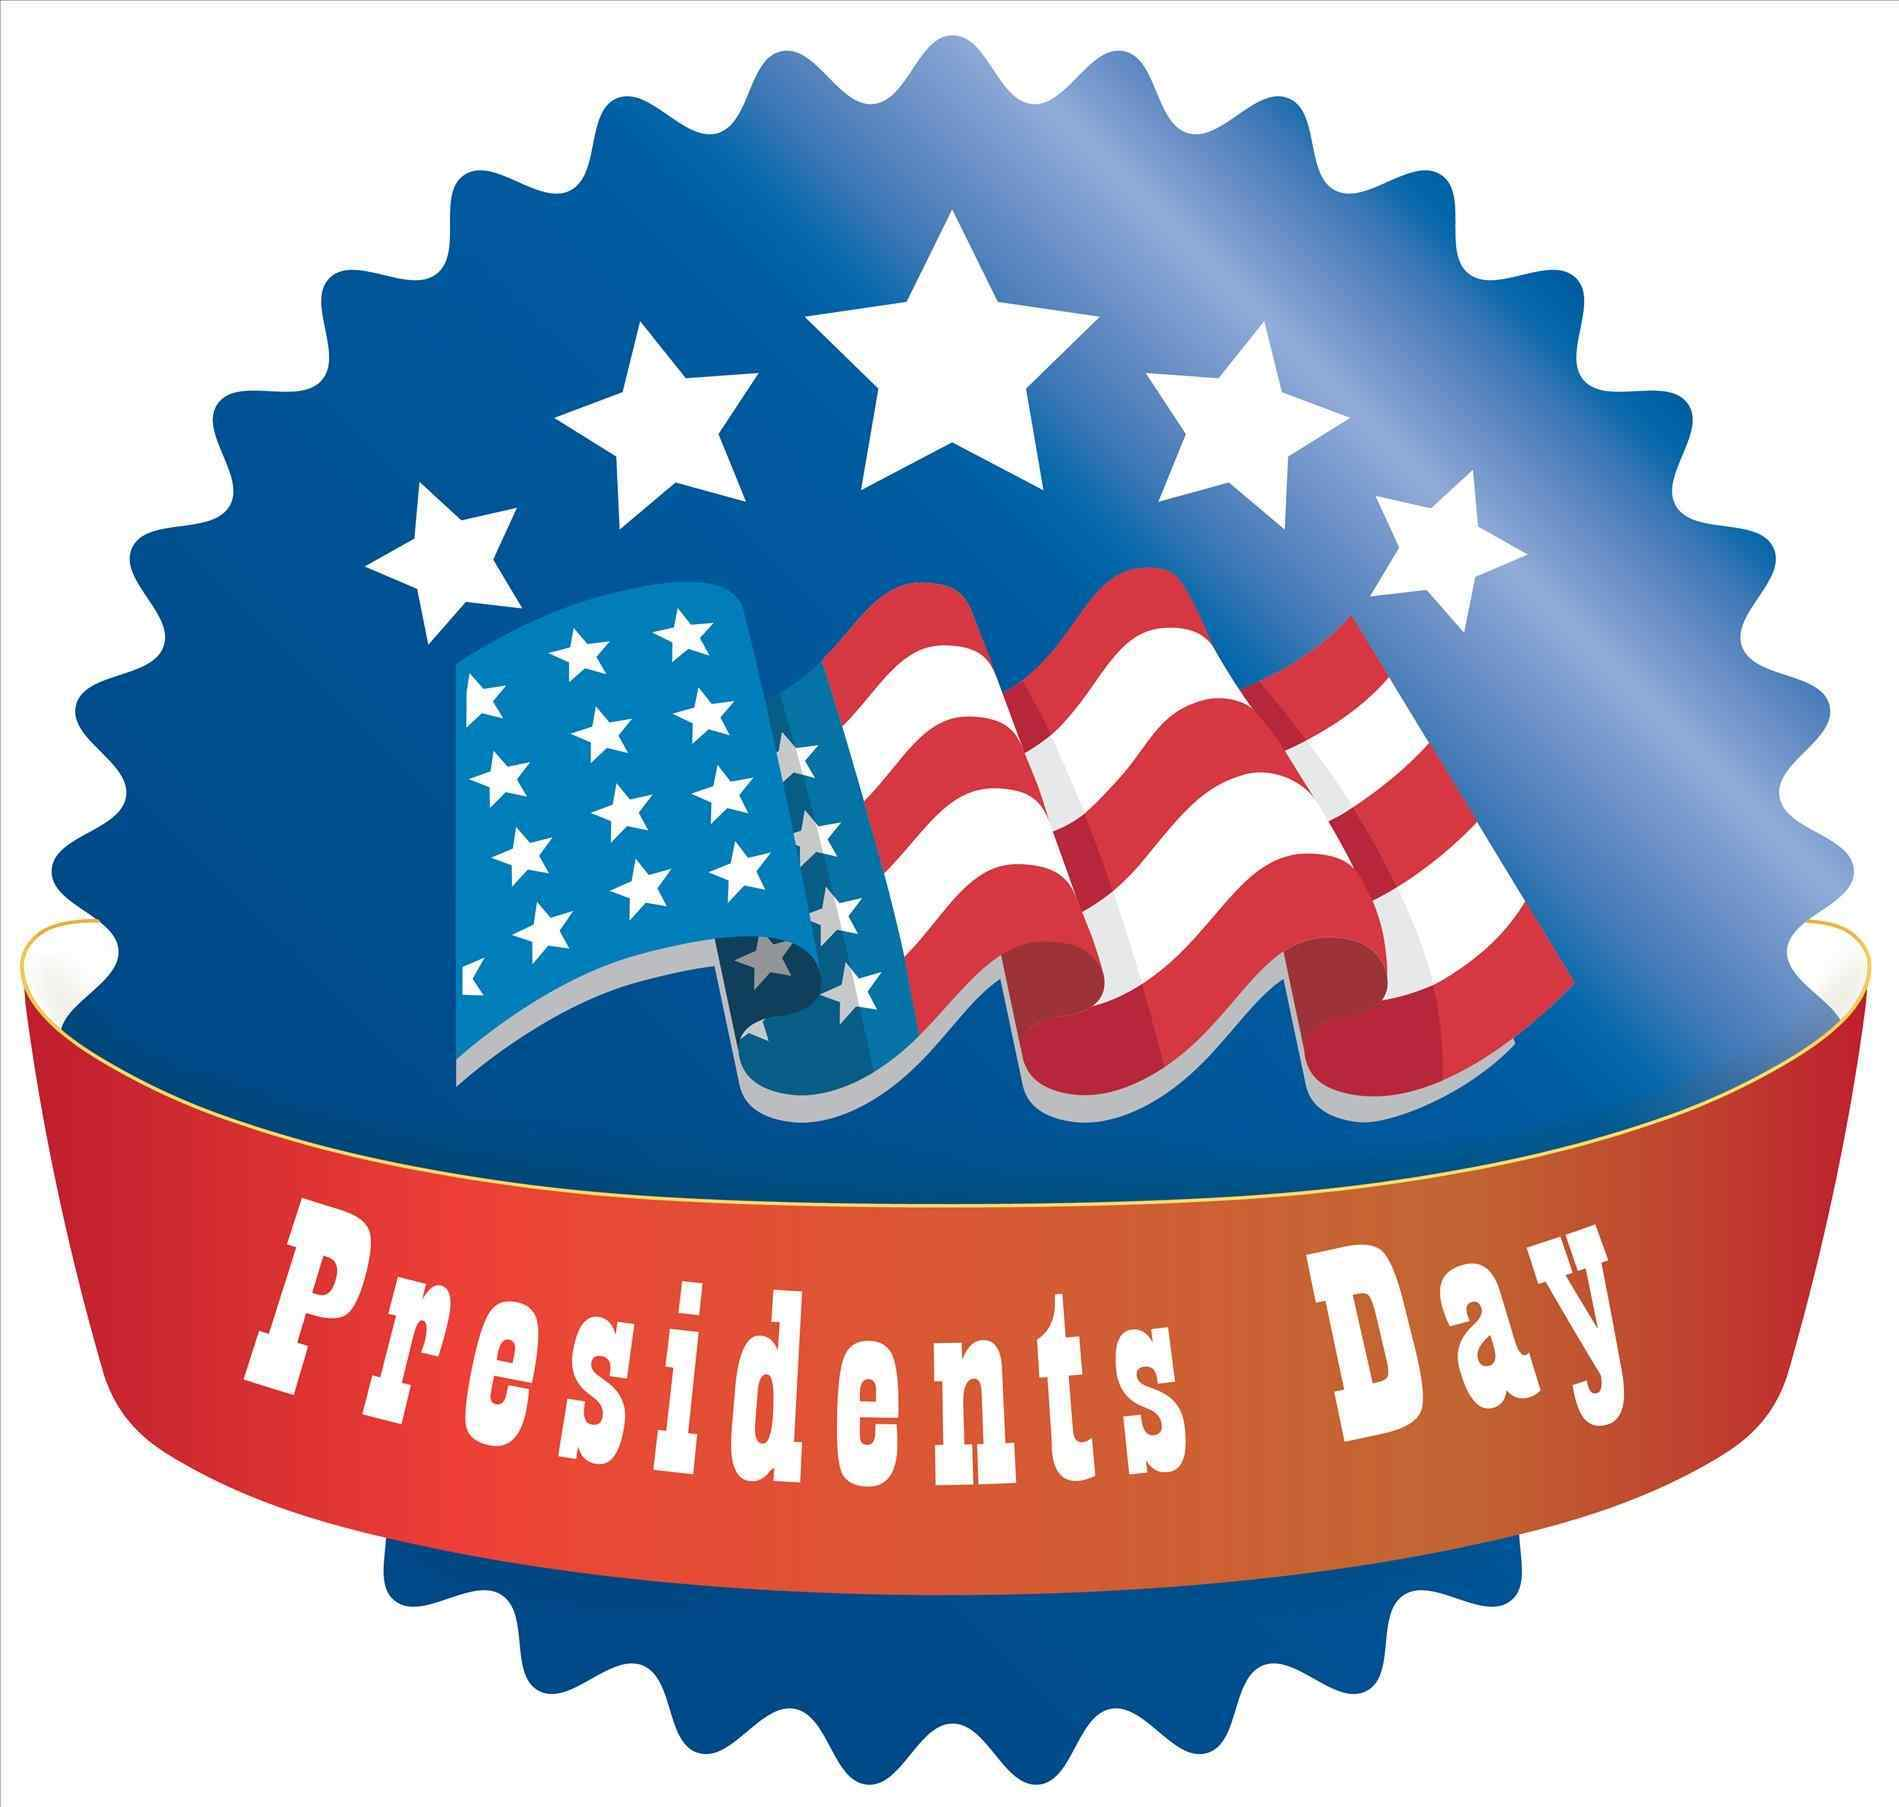 1899x1807 Free Download Clip Art Presidents Day Clipart Presidents Free